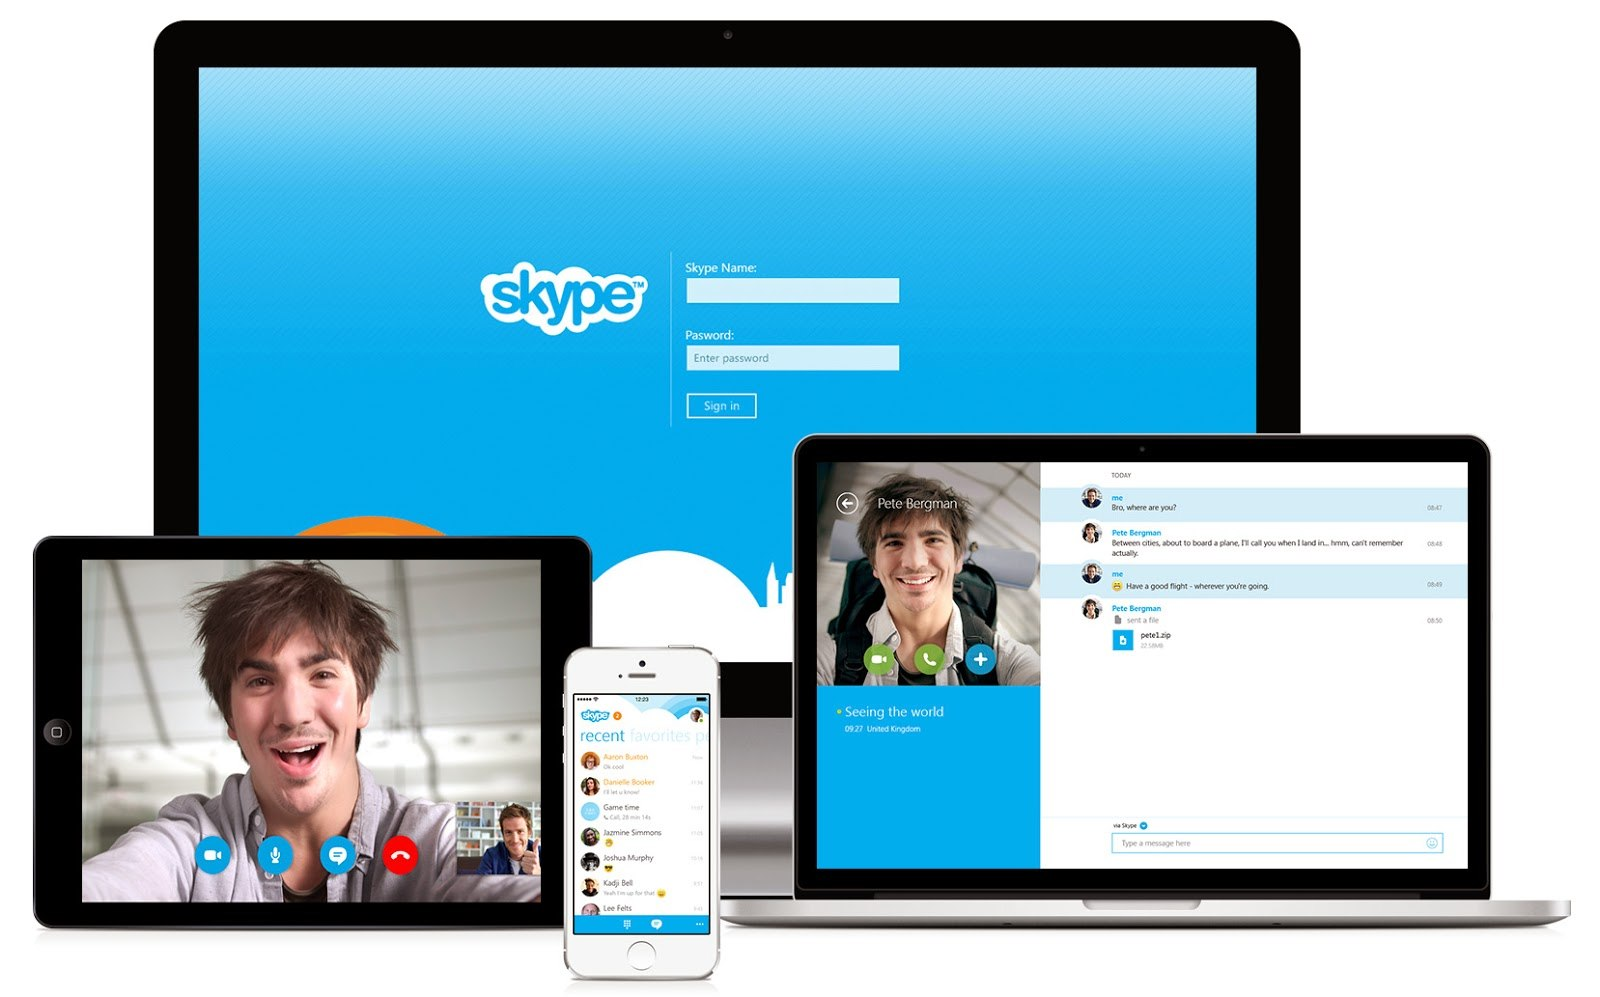 Skype for business: Top social media sites for business in 2016